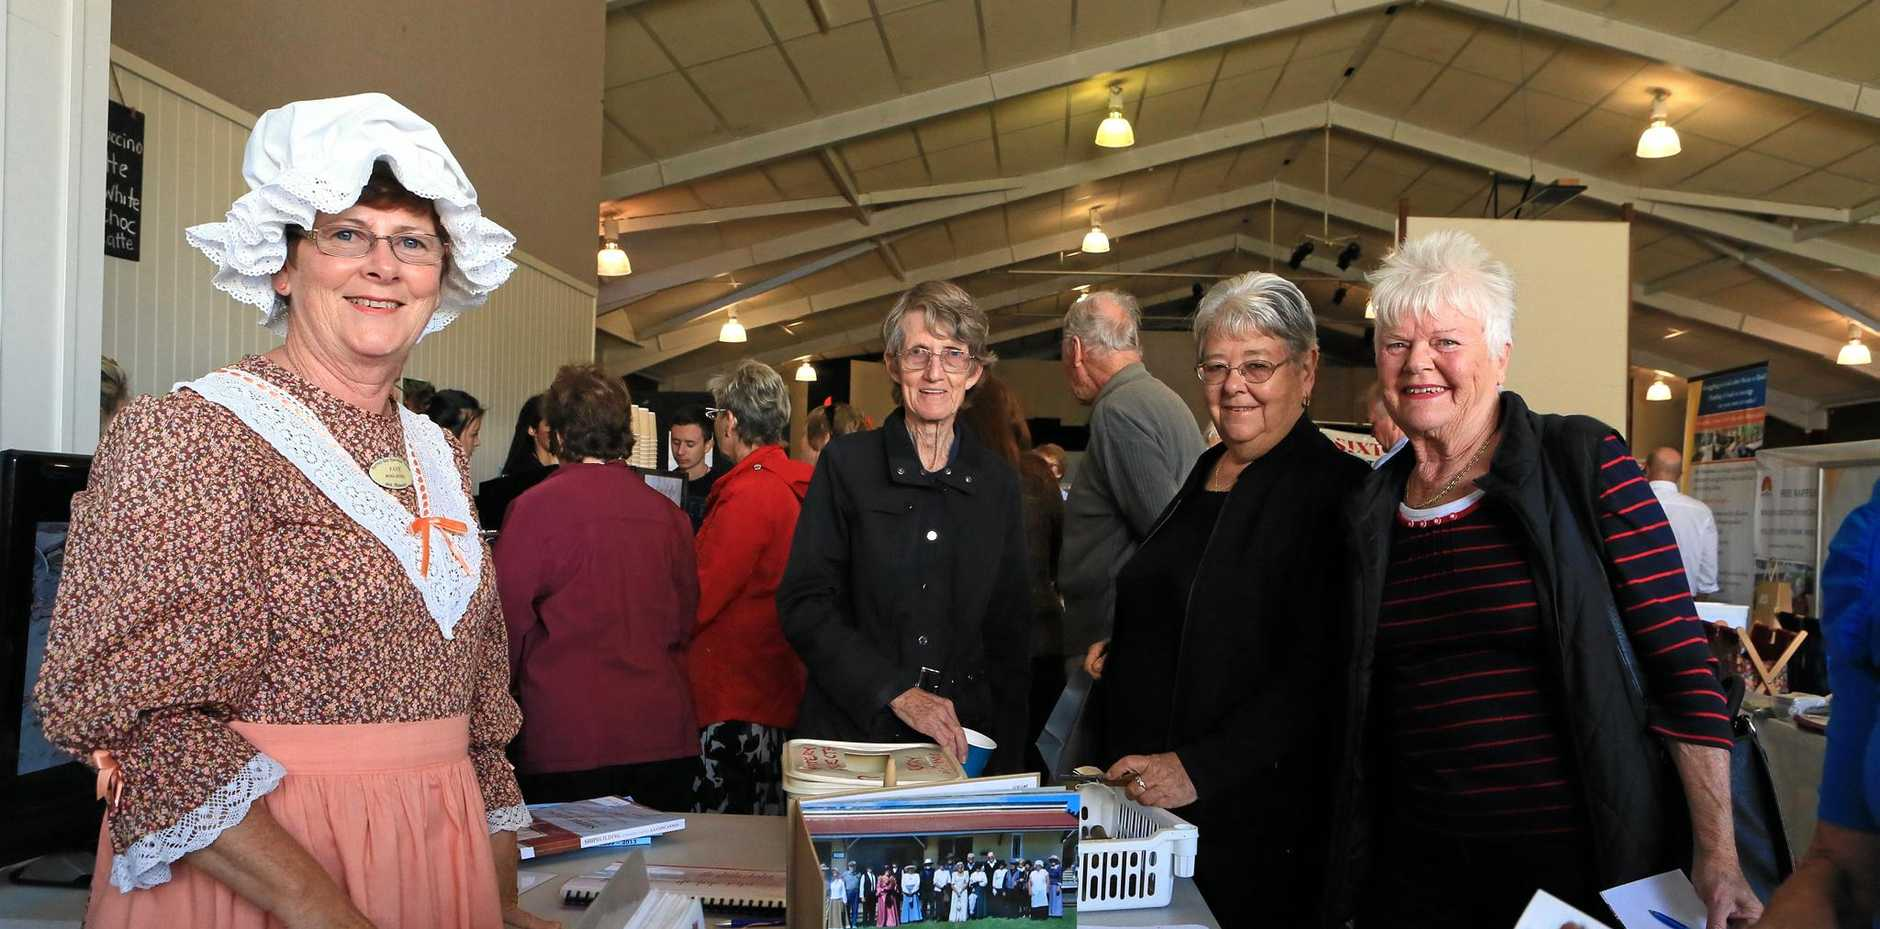 Hervey Bay Historical Village and Museum stall at the 2015 Fraser Coast Seniors Expo with Faye Ross-Jones, Edna Cheetham, Mavis Bennett and Beverly Brooker.